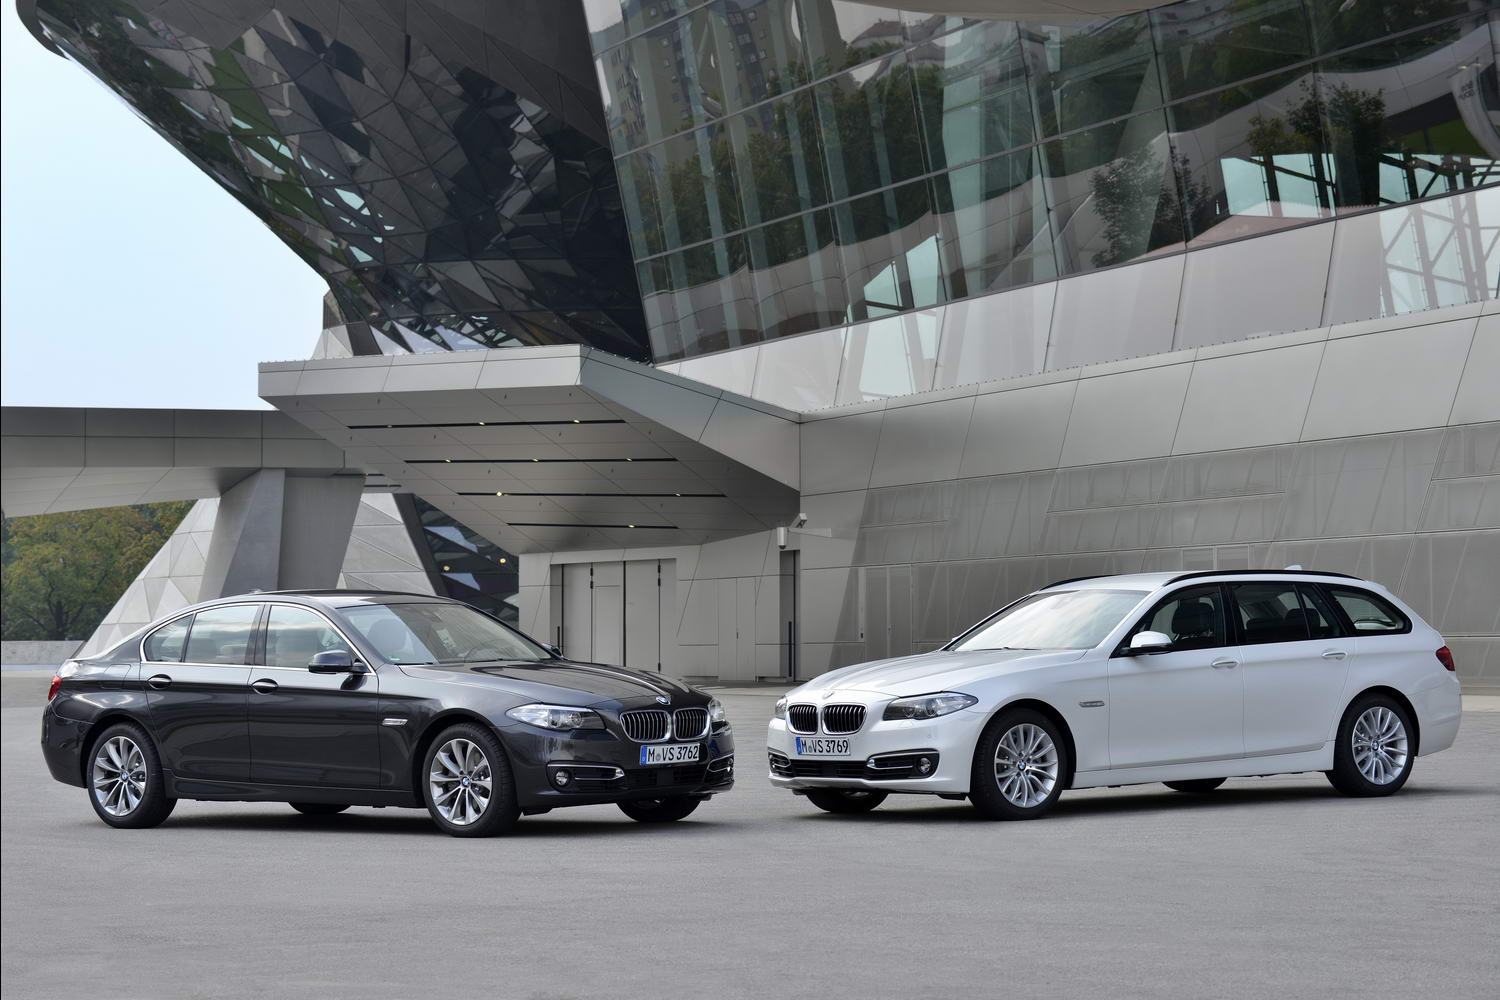 Bmw 5 Series F10 2010 2017 Used Car Buying Guide By Completecar Ie